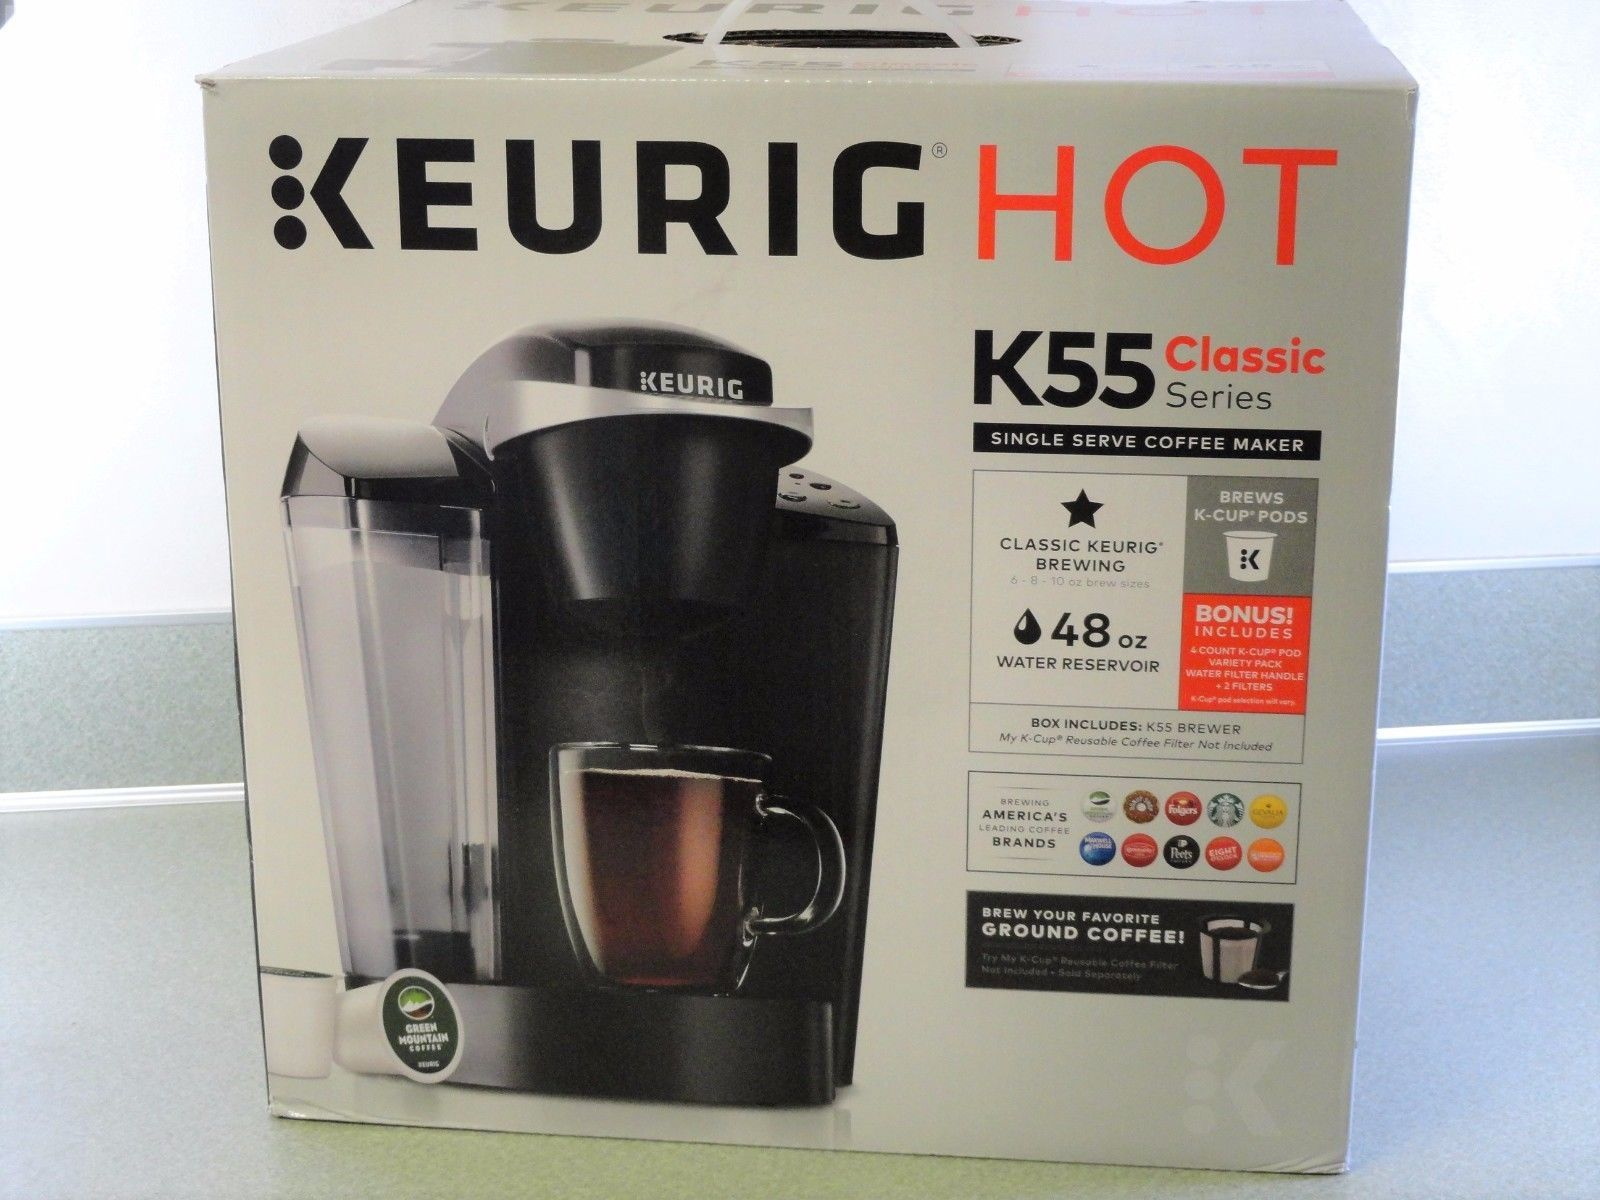 5l accents range only electricals co uk small kitchen appliances - Small Kitchen Appliances Keurig K55 Classic K Cup Machine Coffee Maker Brewing System